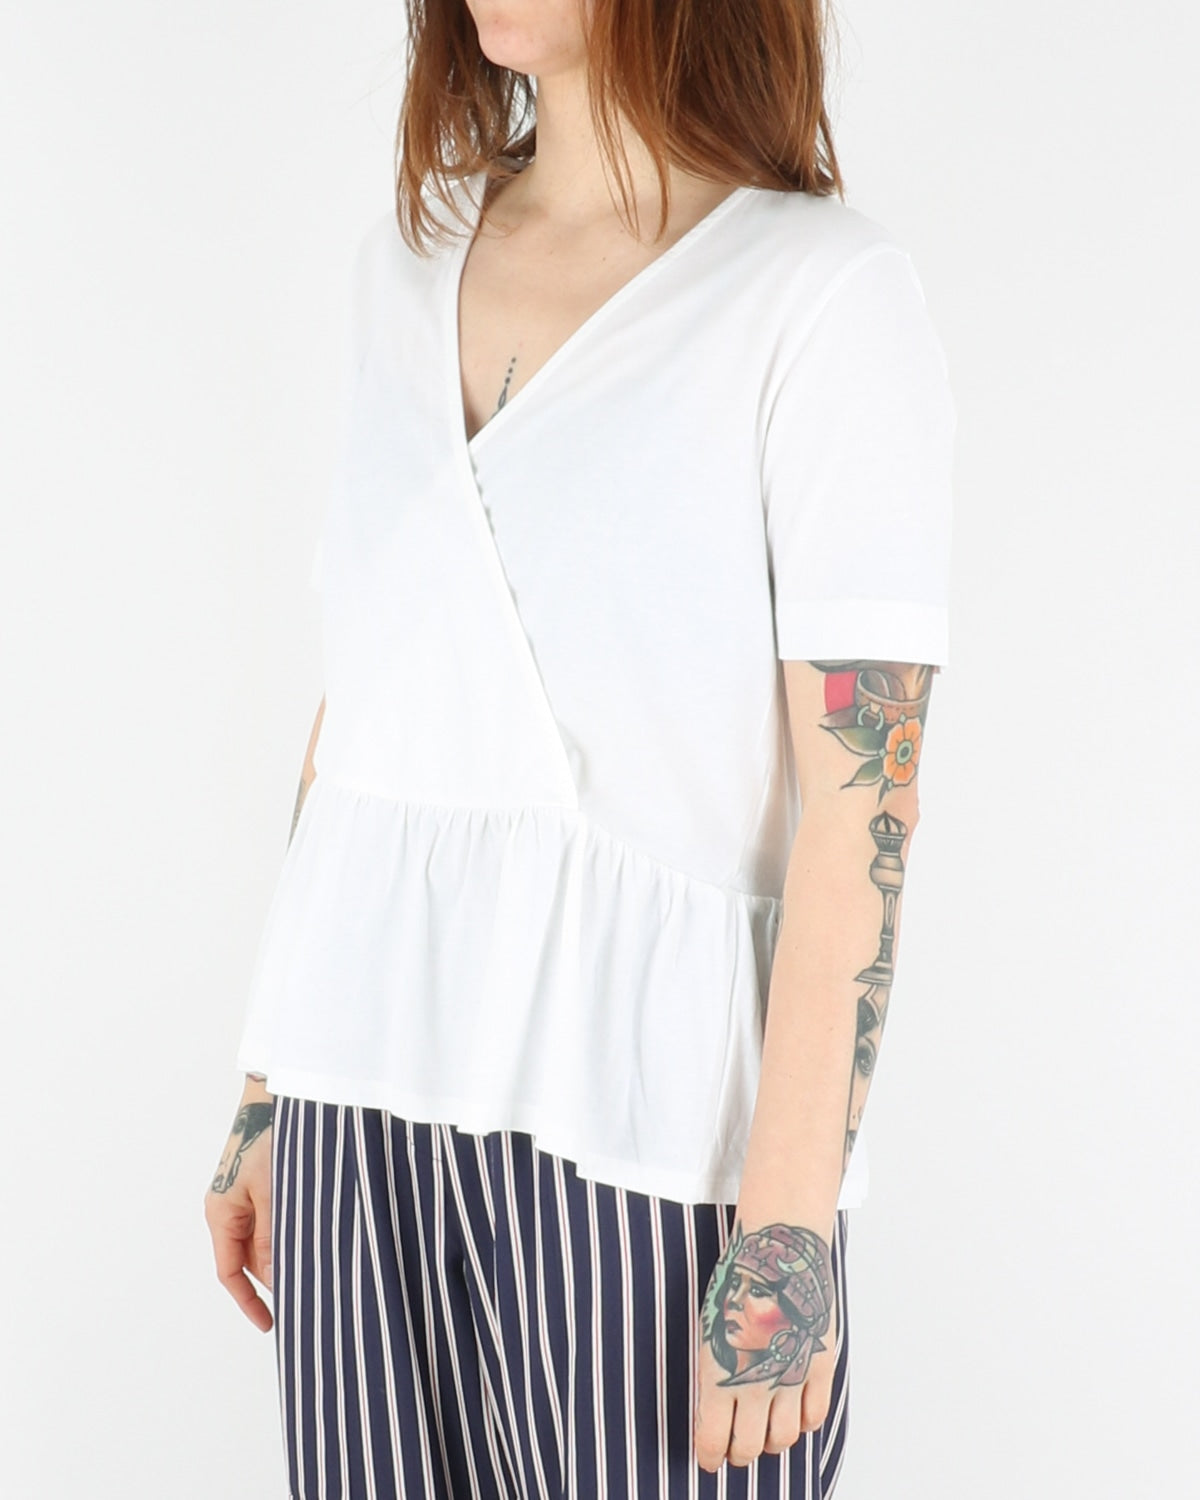 libertine libertine_grace top_white_3_3